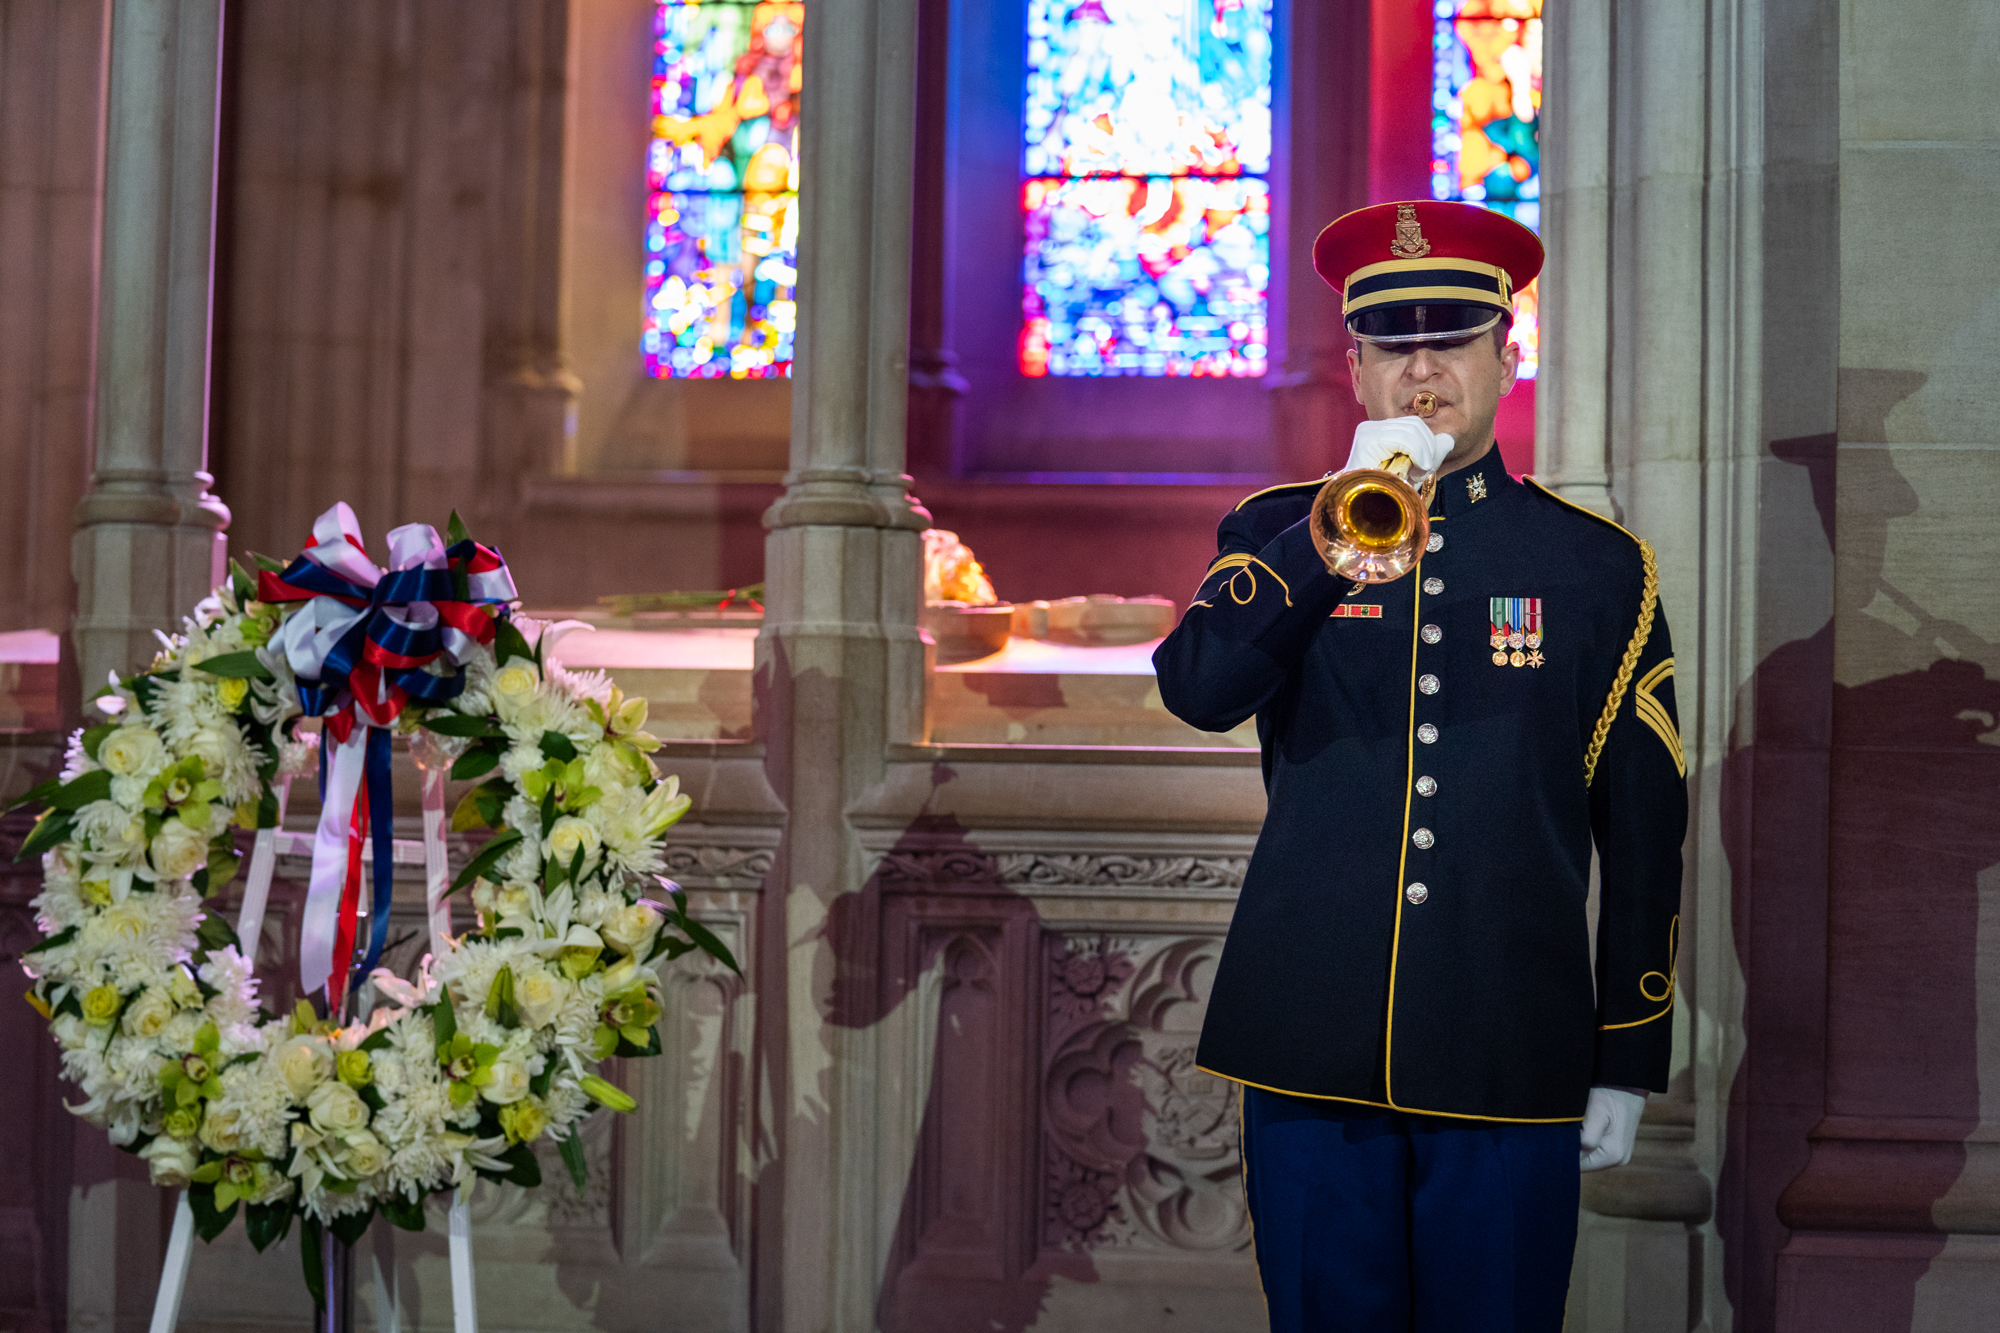 A member of the U.S. Army Band plays Taps while standing alongside the centennial wreath.